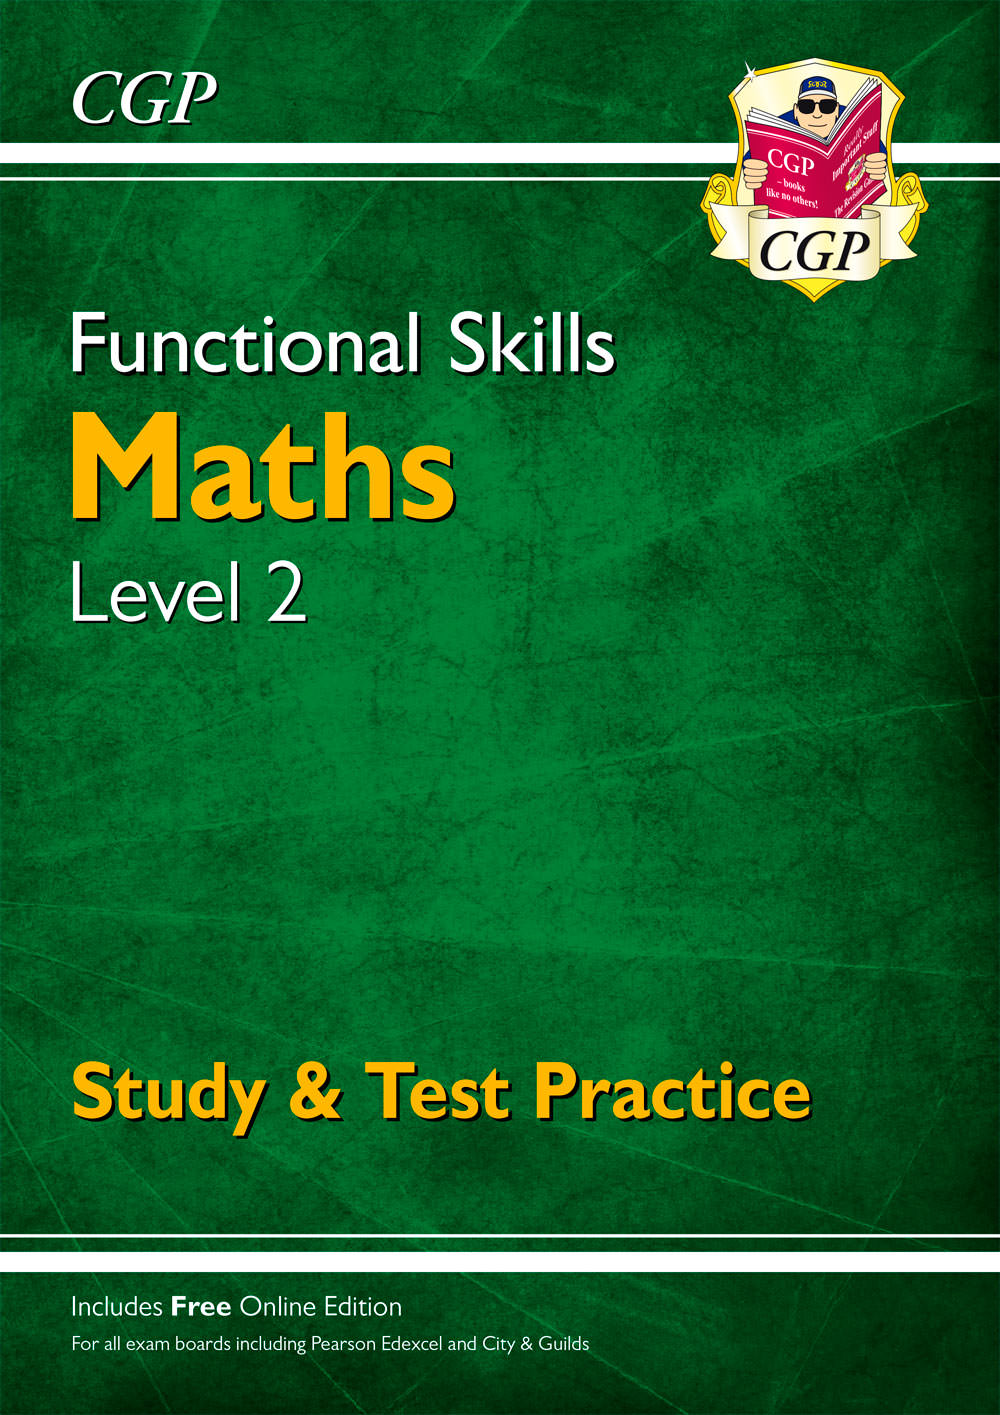 M2SRA3 - New Functional Skills Maths Level 2 - Study & Test Practice (for 2020 & beyond)